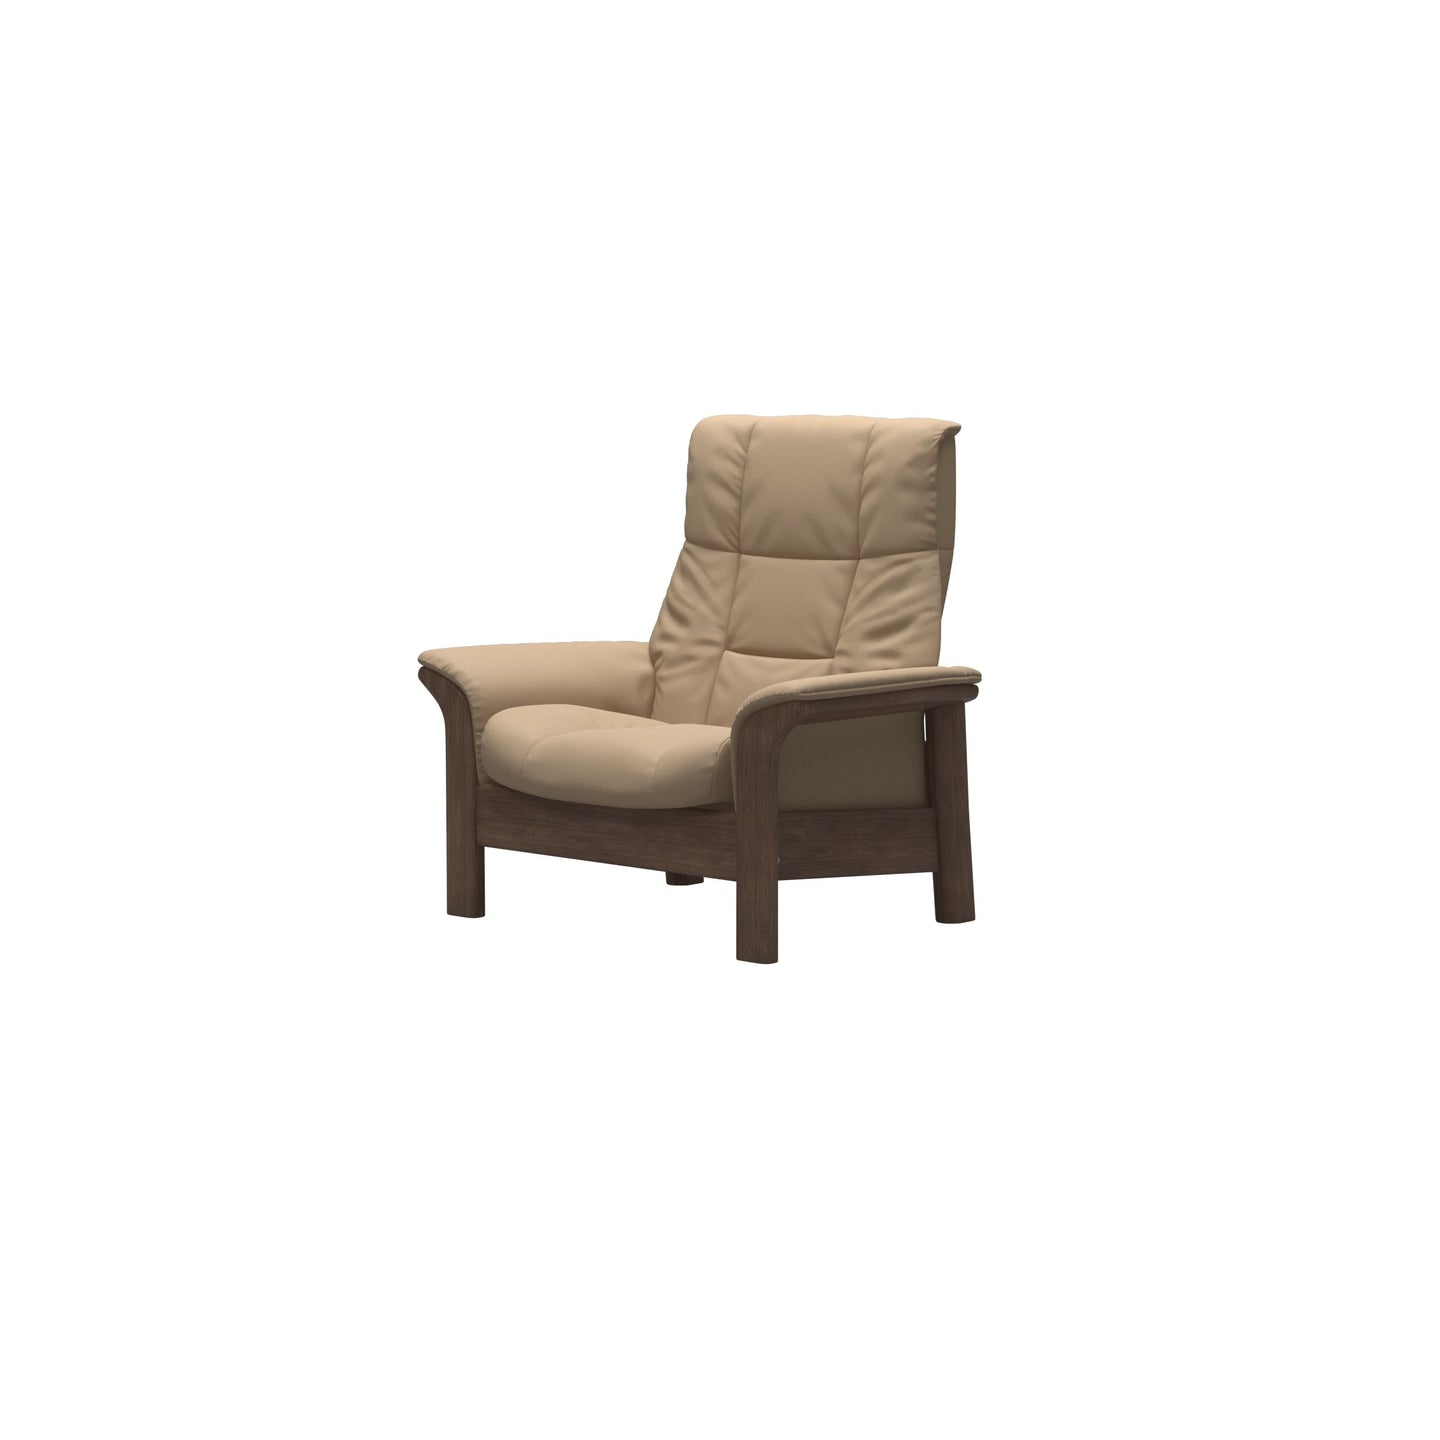 Stressless® Buckingham (L) chair High back